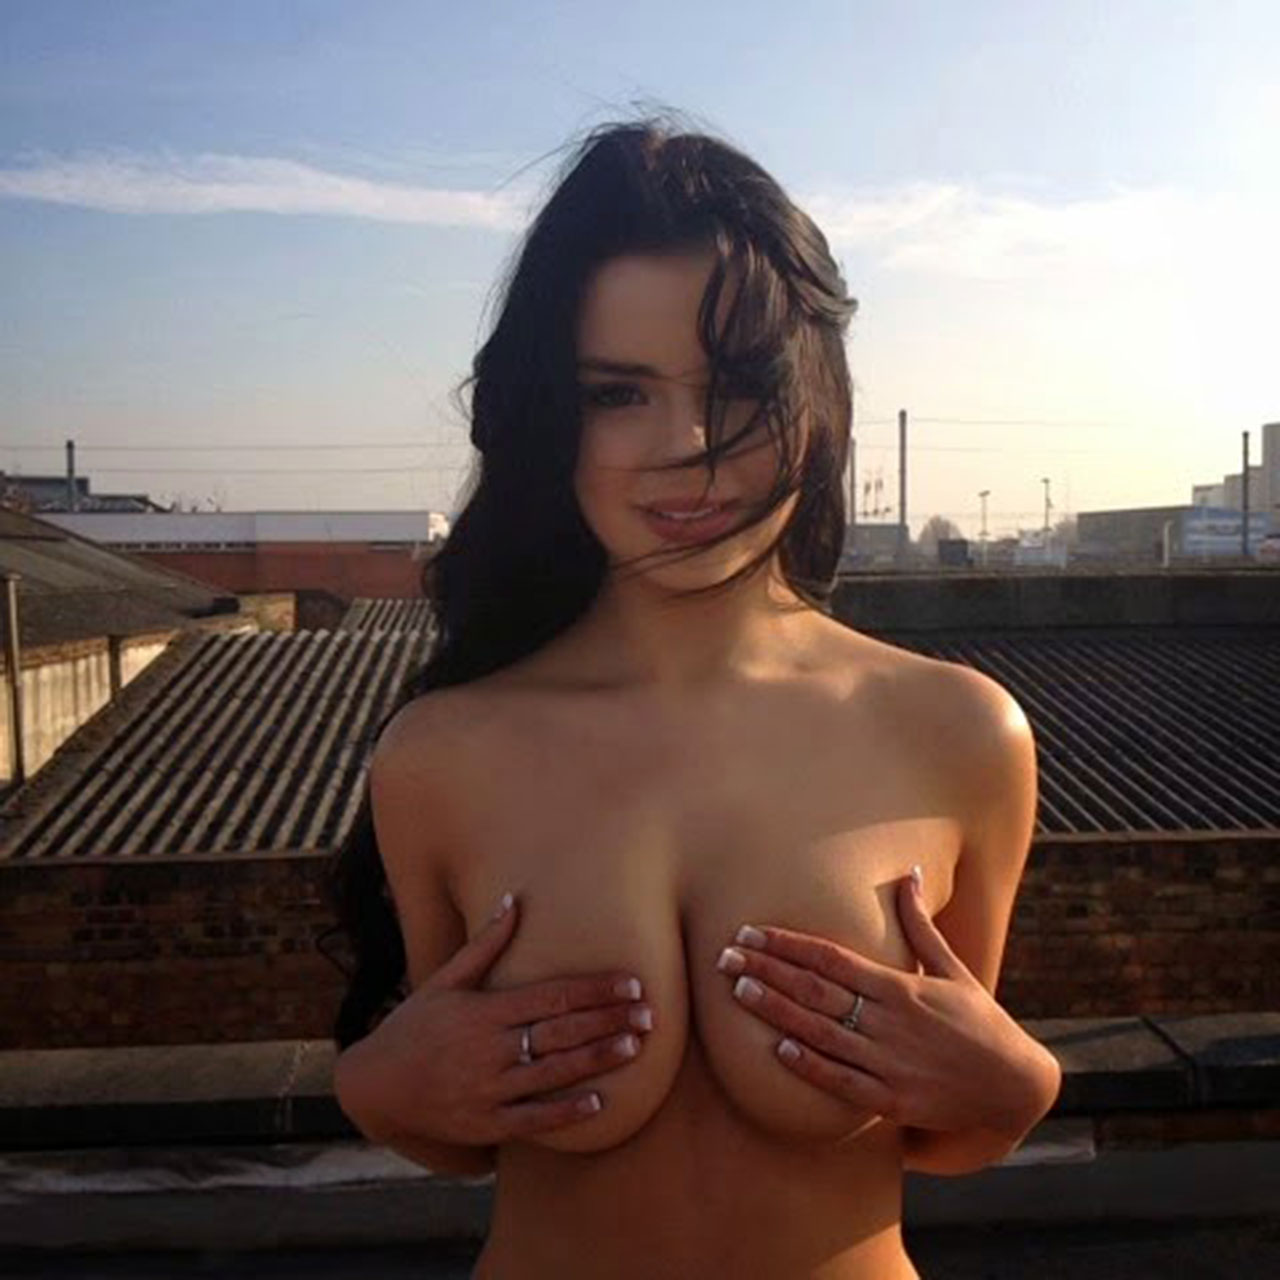 demi rose mawby nude and topless leaked private pics !